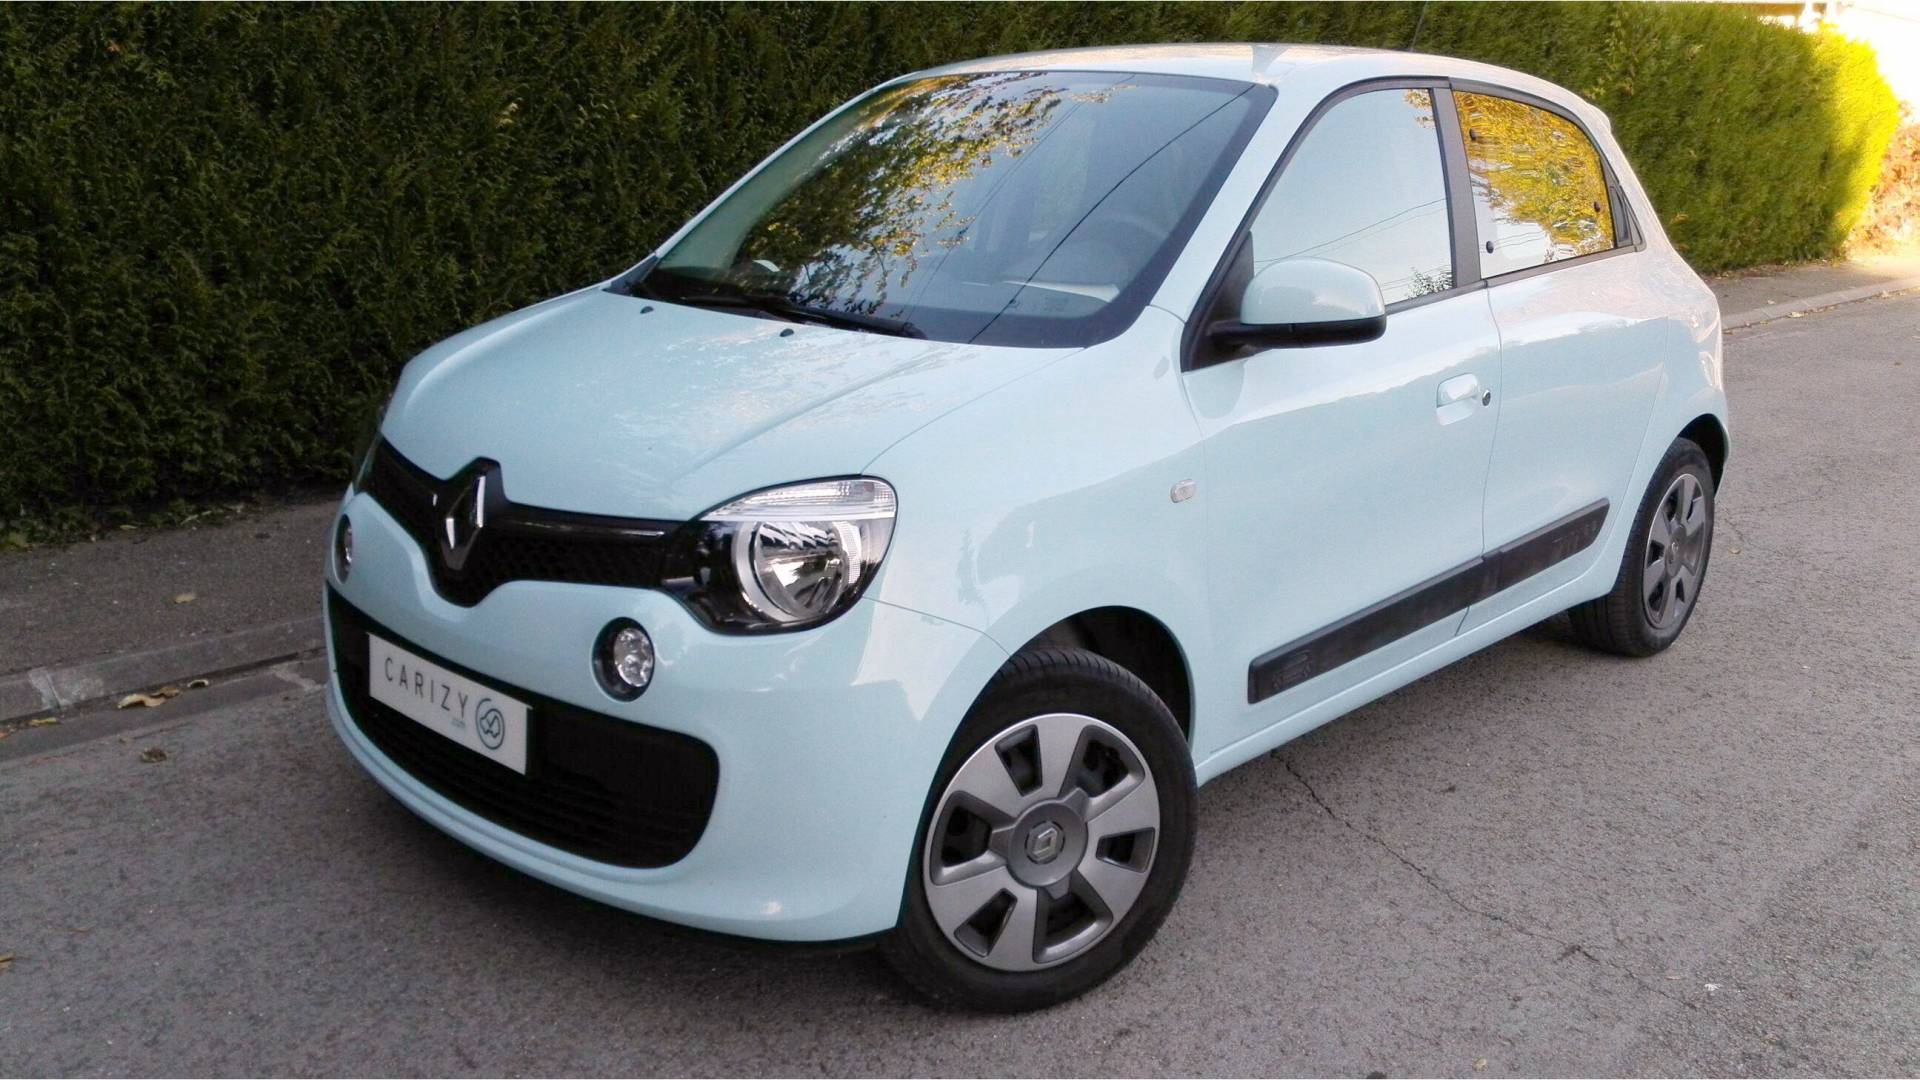 renault twingo d 39 occasion 1 2 lev 75 zen paris la defense cedex carizy. Black Bedroom Furniture Sets. Home Design Ideas